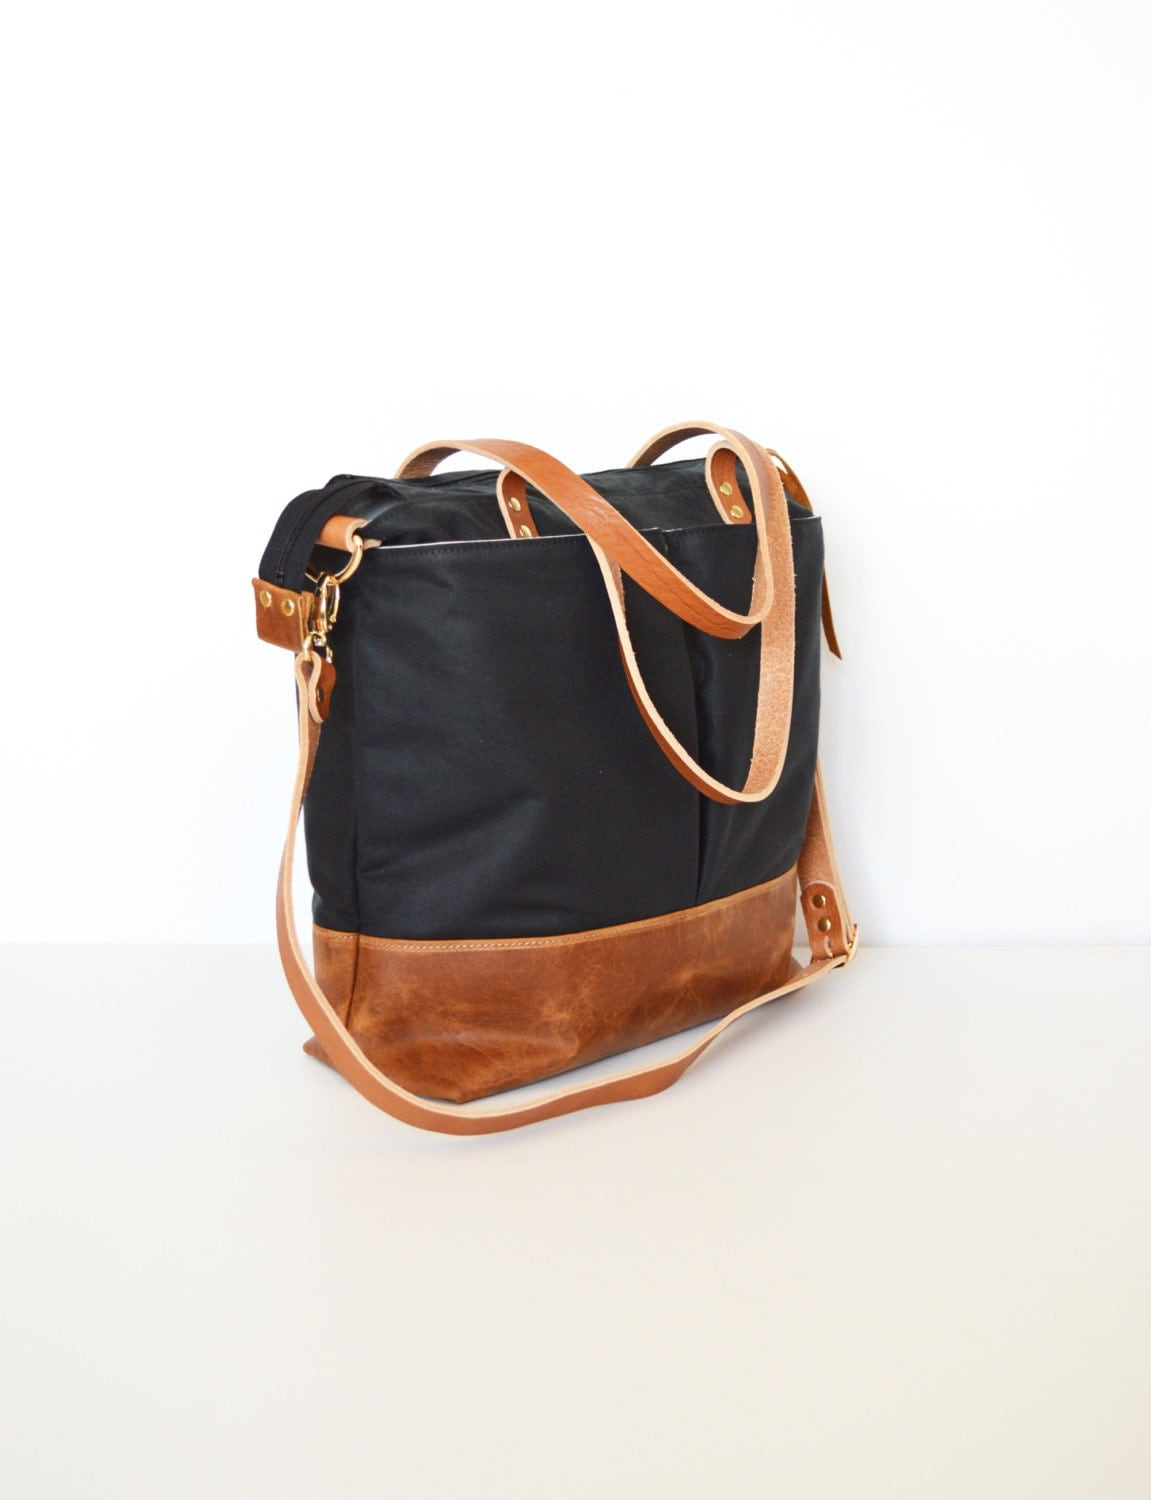 diaper bag backpack leather and waxed canvas unisex diaper. Black Bedroom Furniture Sets. Home Design Ideas